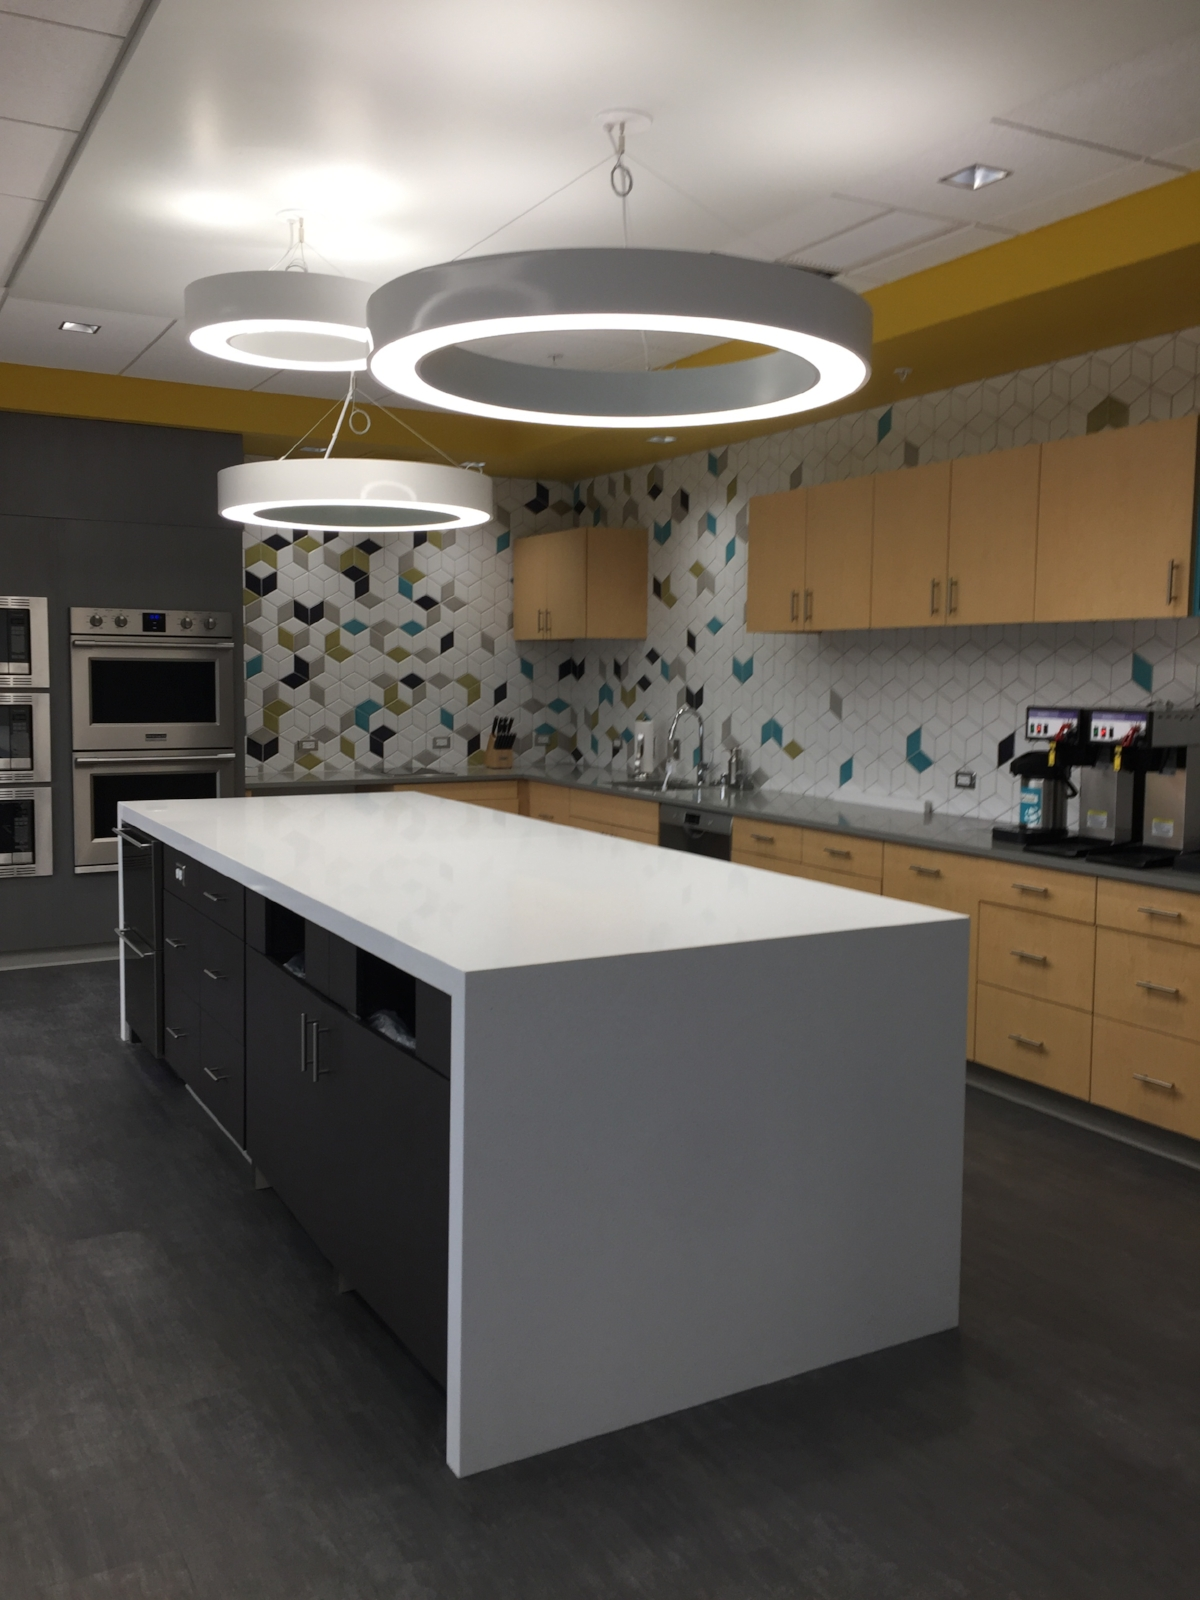 LKitchen Island / Staff lounge Island / Break room / Custom tile backsplash / Rhombus Tile